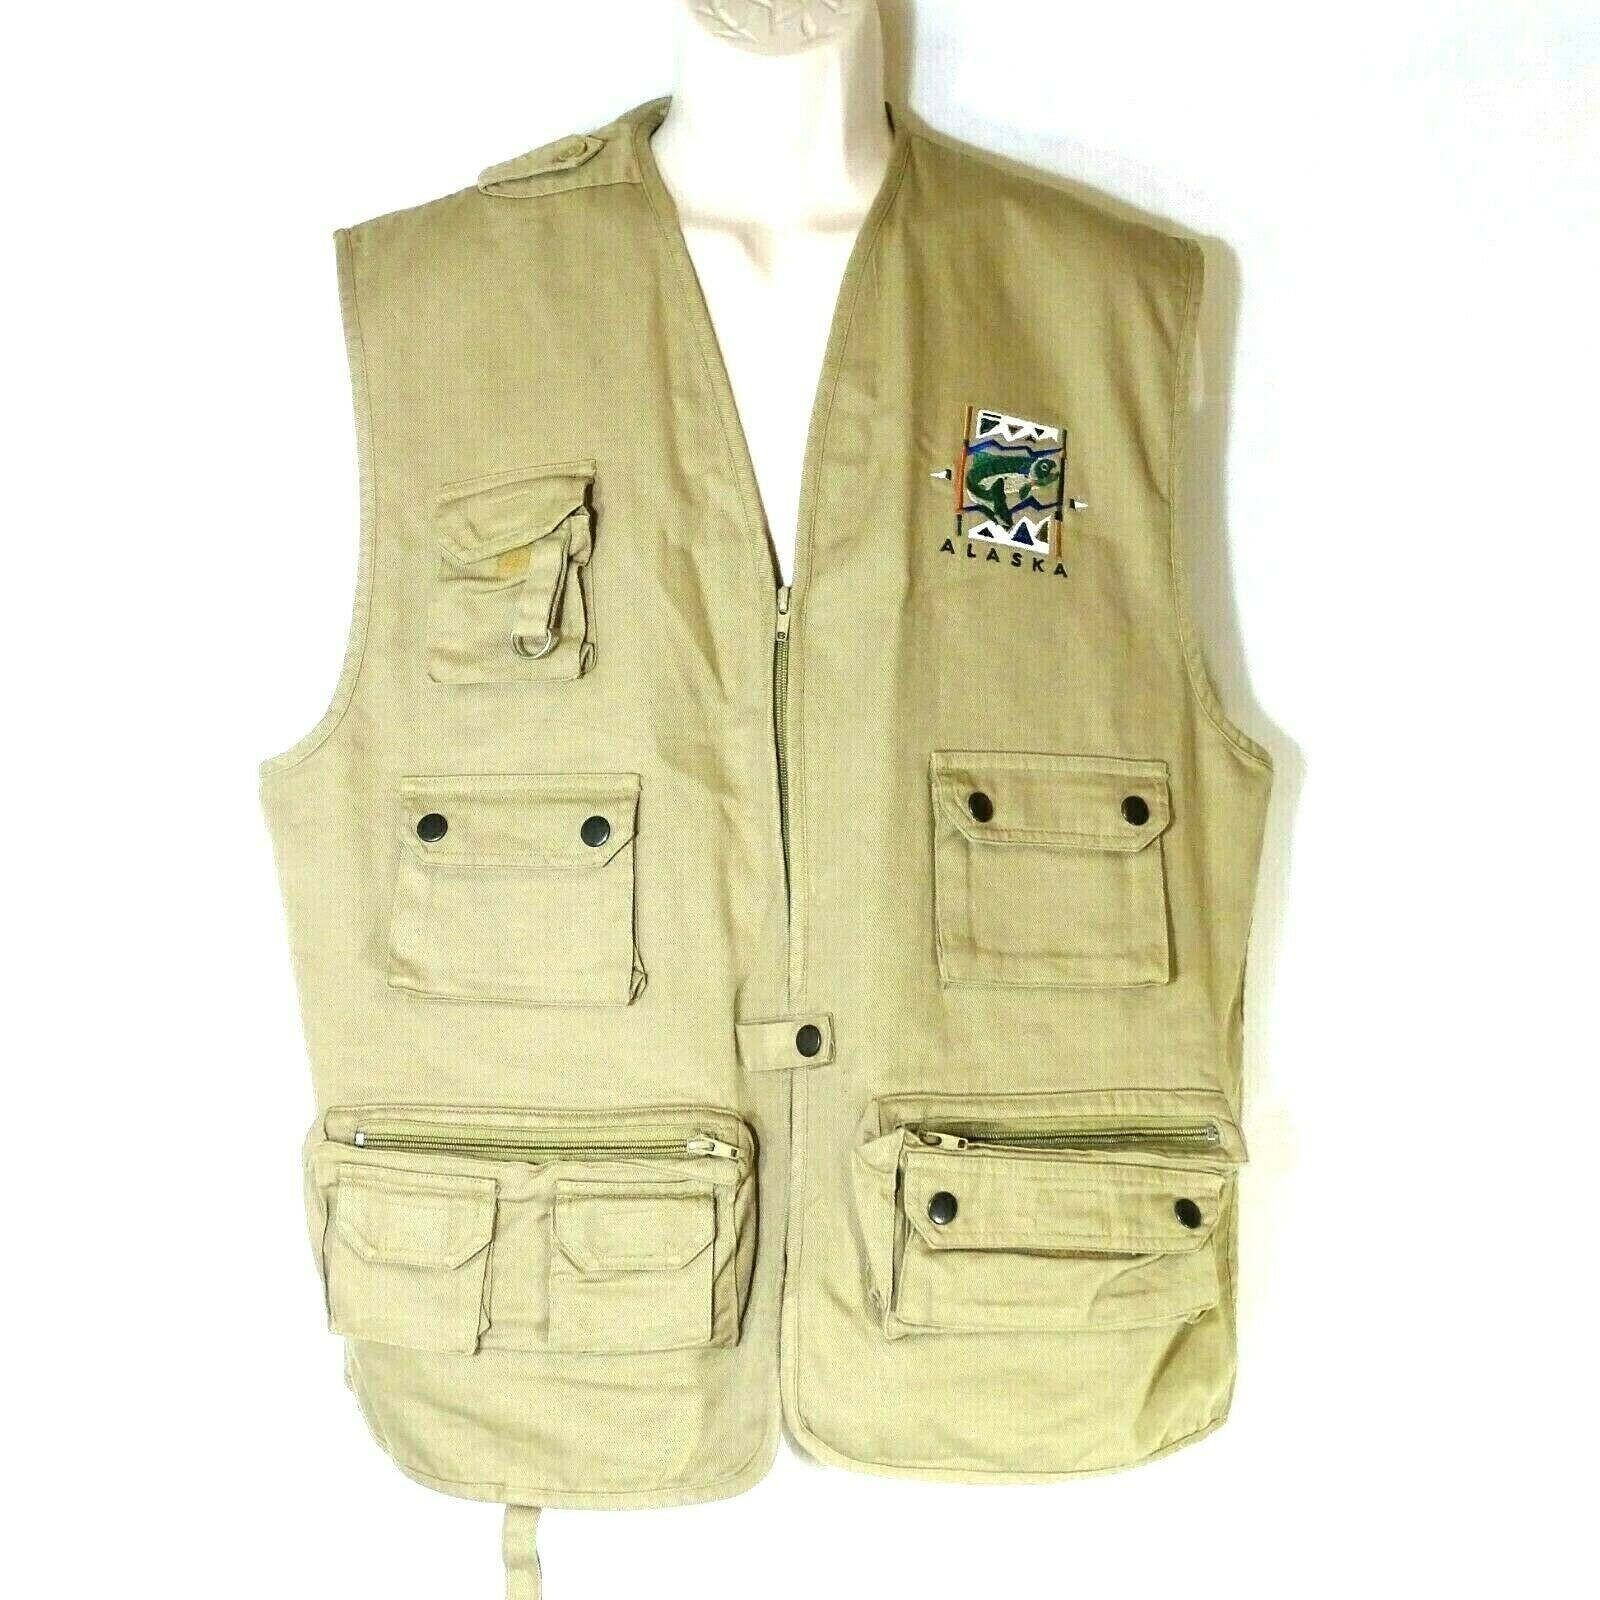 Primary image for Polar Graphics Alaska Fishing Vest Full Zip Men Women Size L Tan Khaki Pockets